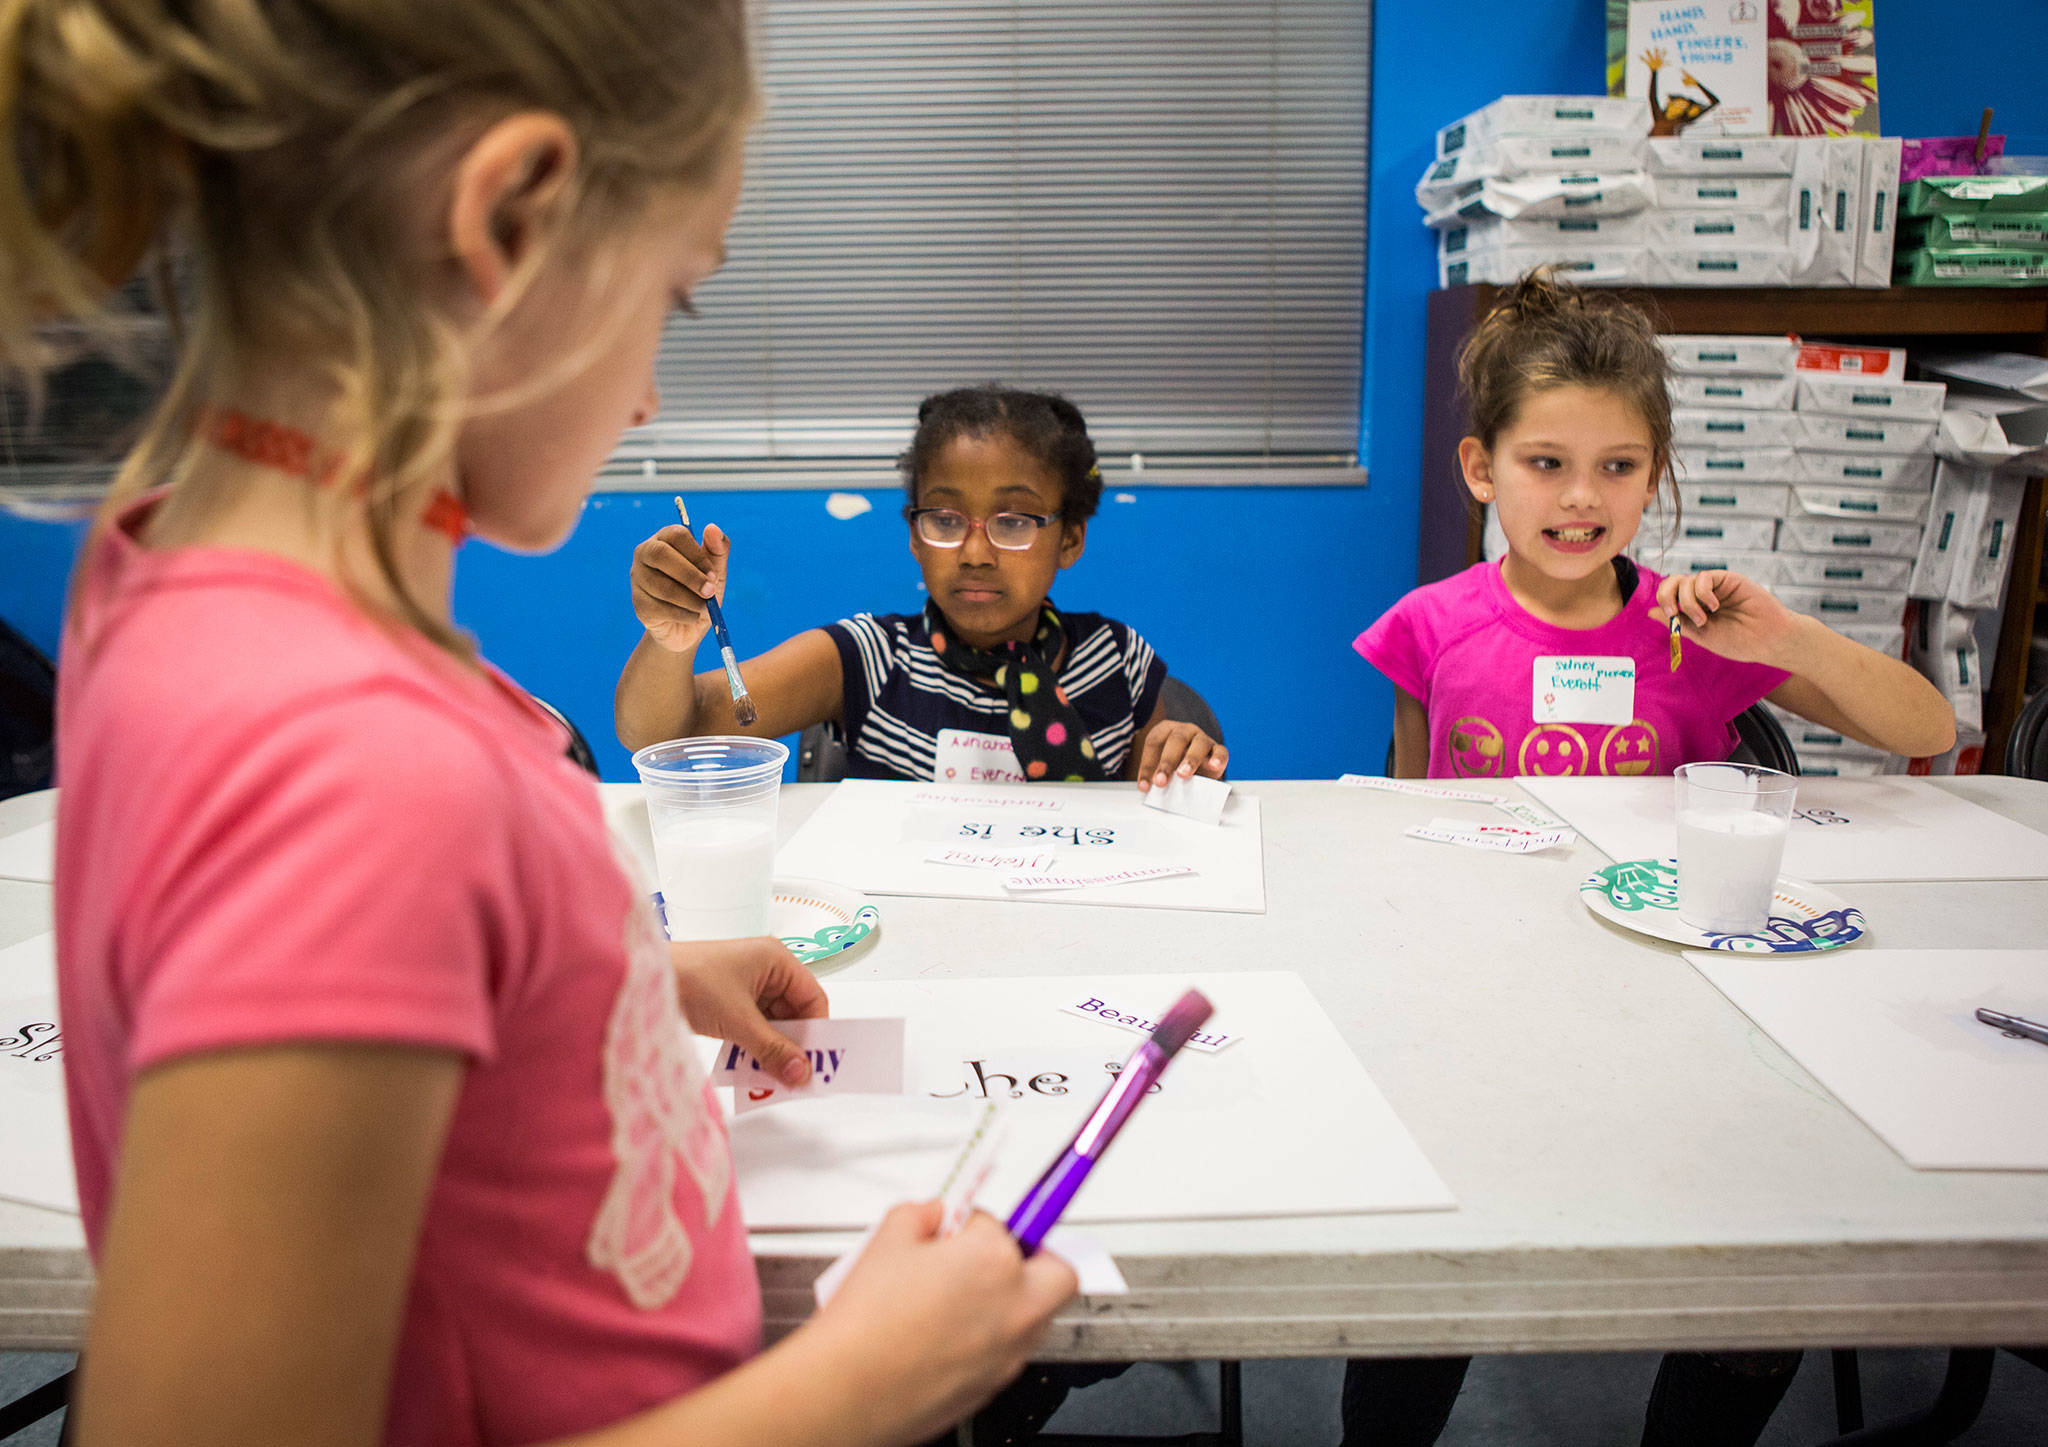 Adriana Smith (center) and Sydney Piekarski (right), both 8, work during an InspireHER event at the Snohomish Boys & Girls Club. (Olivia Vanni / The Herald)